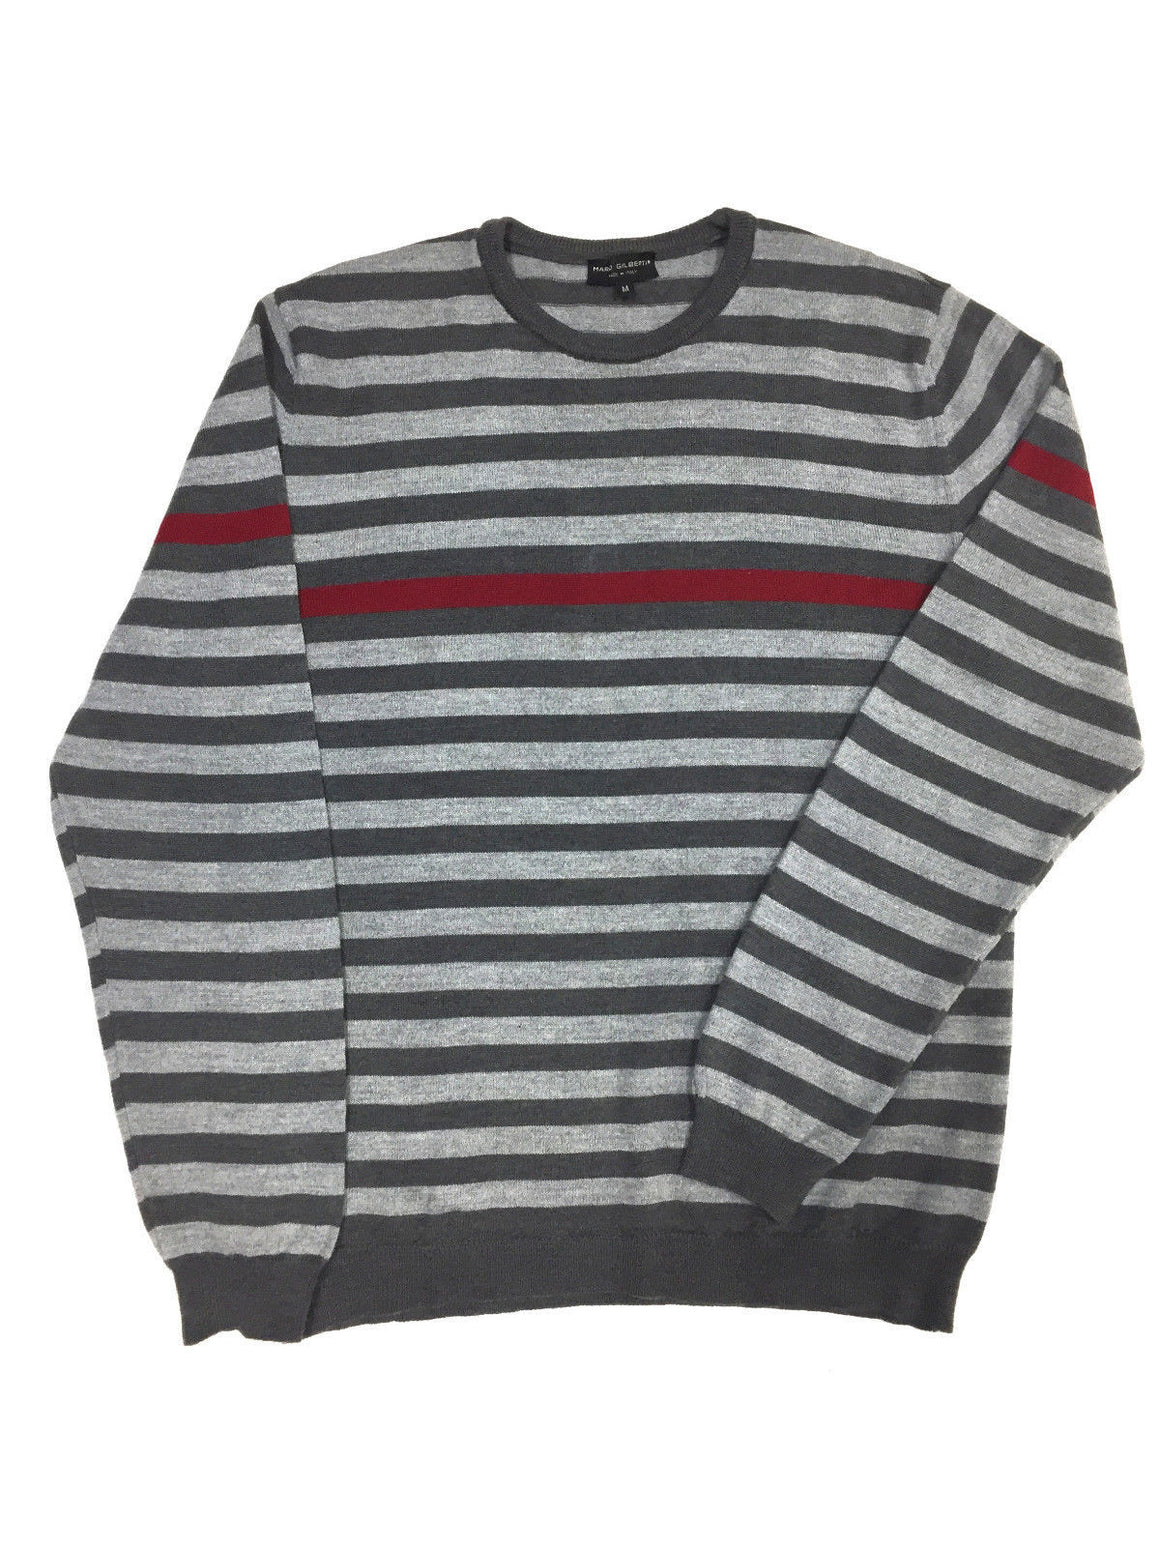 bisbiz.com MARCO GILBERTI   Gray Striped Merino Wool Men's Crewneck Sweater Size: M - Bis Luxury Resale